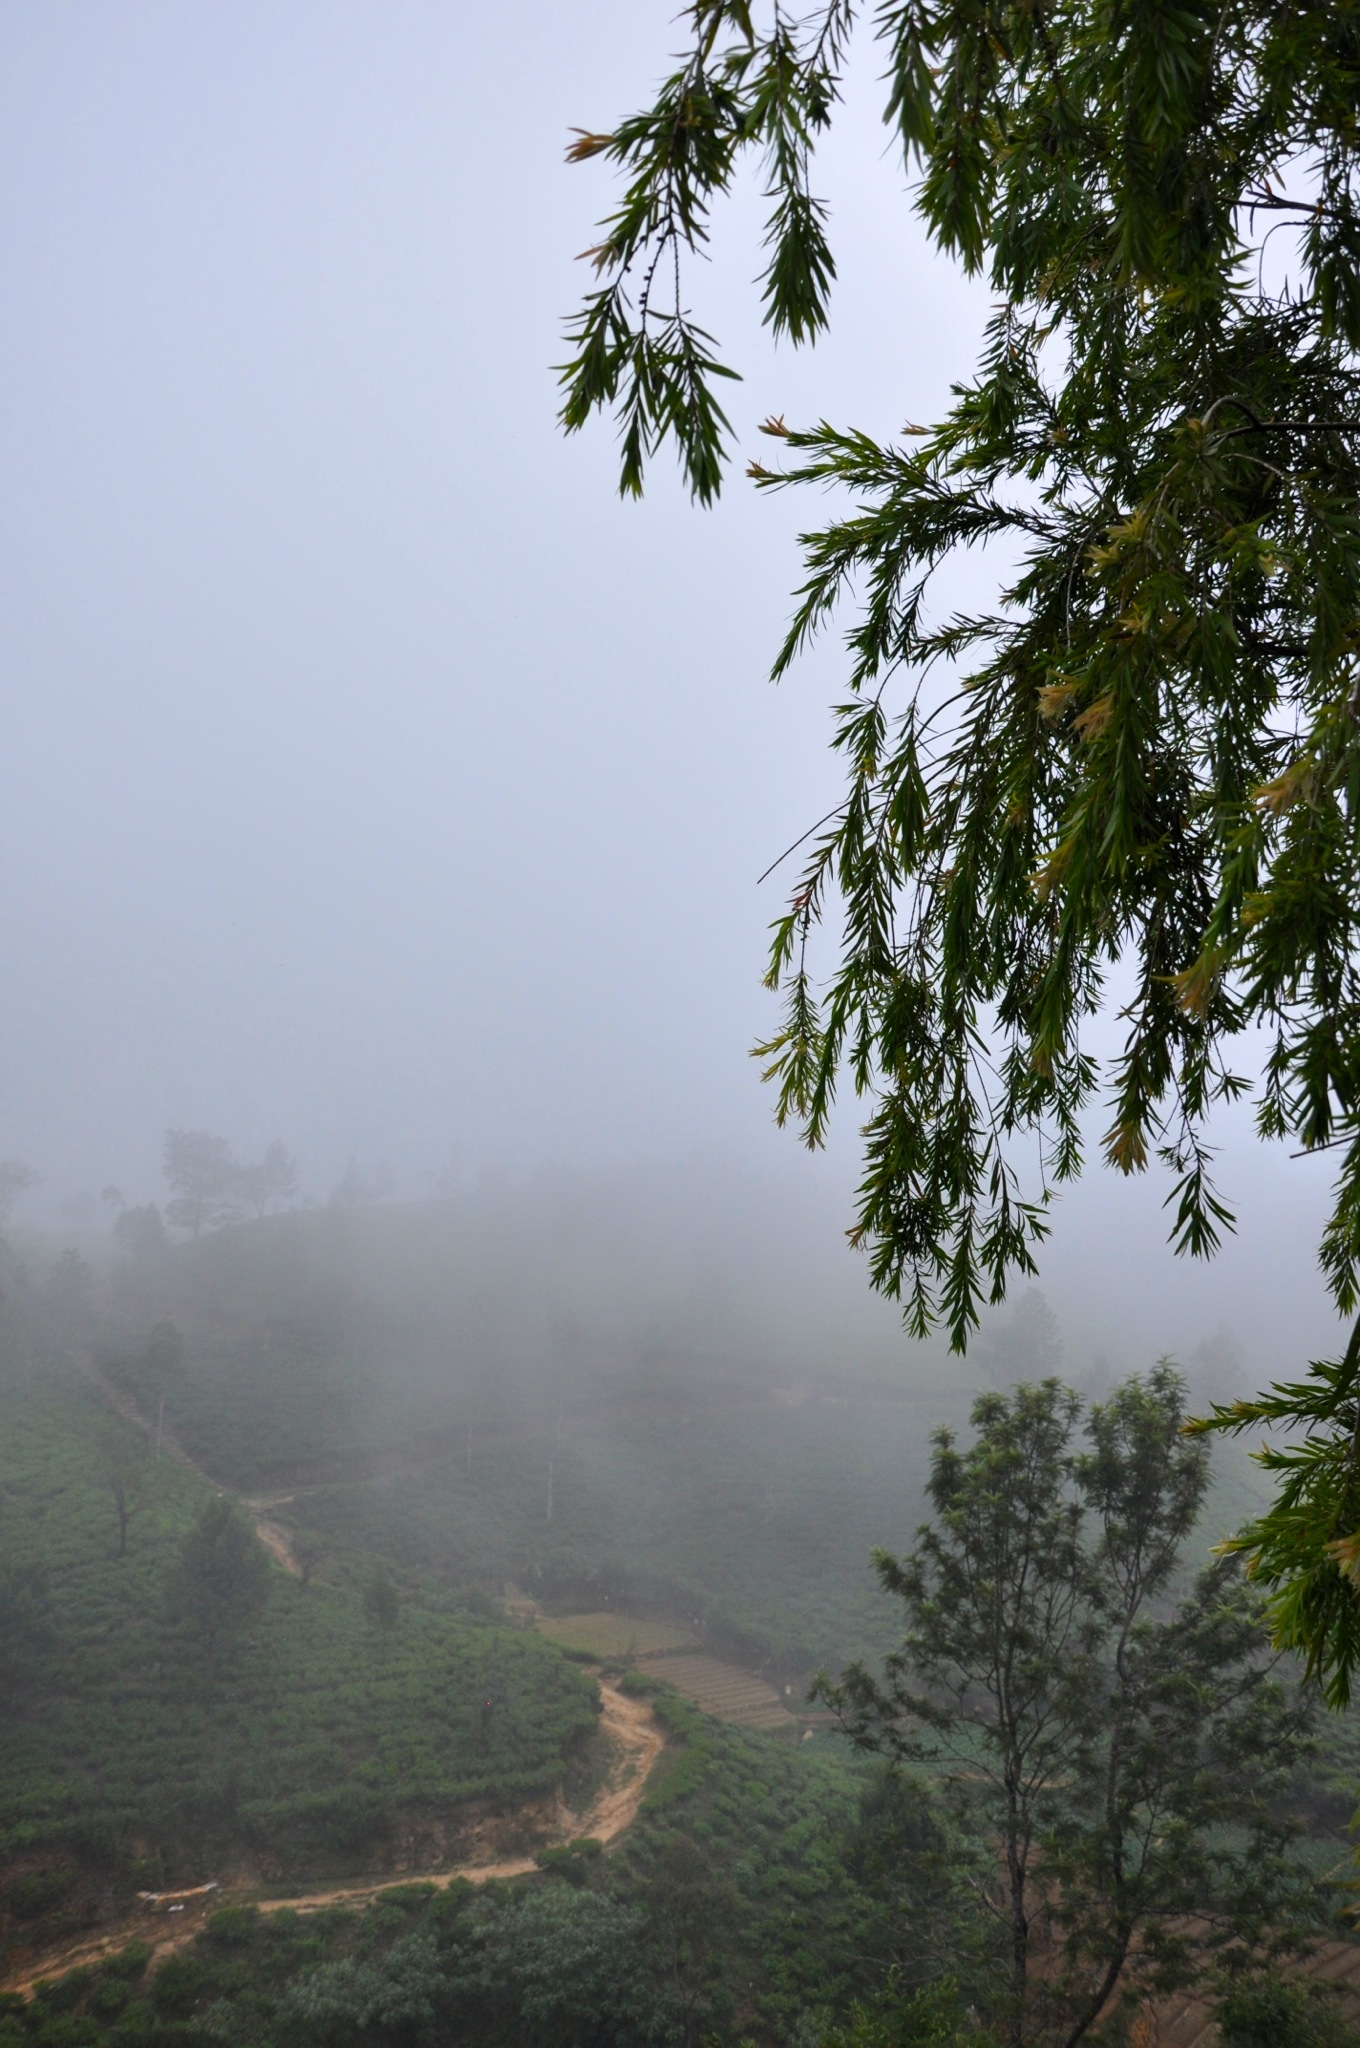 Weather changes fast in the hills